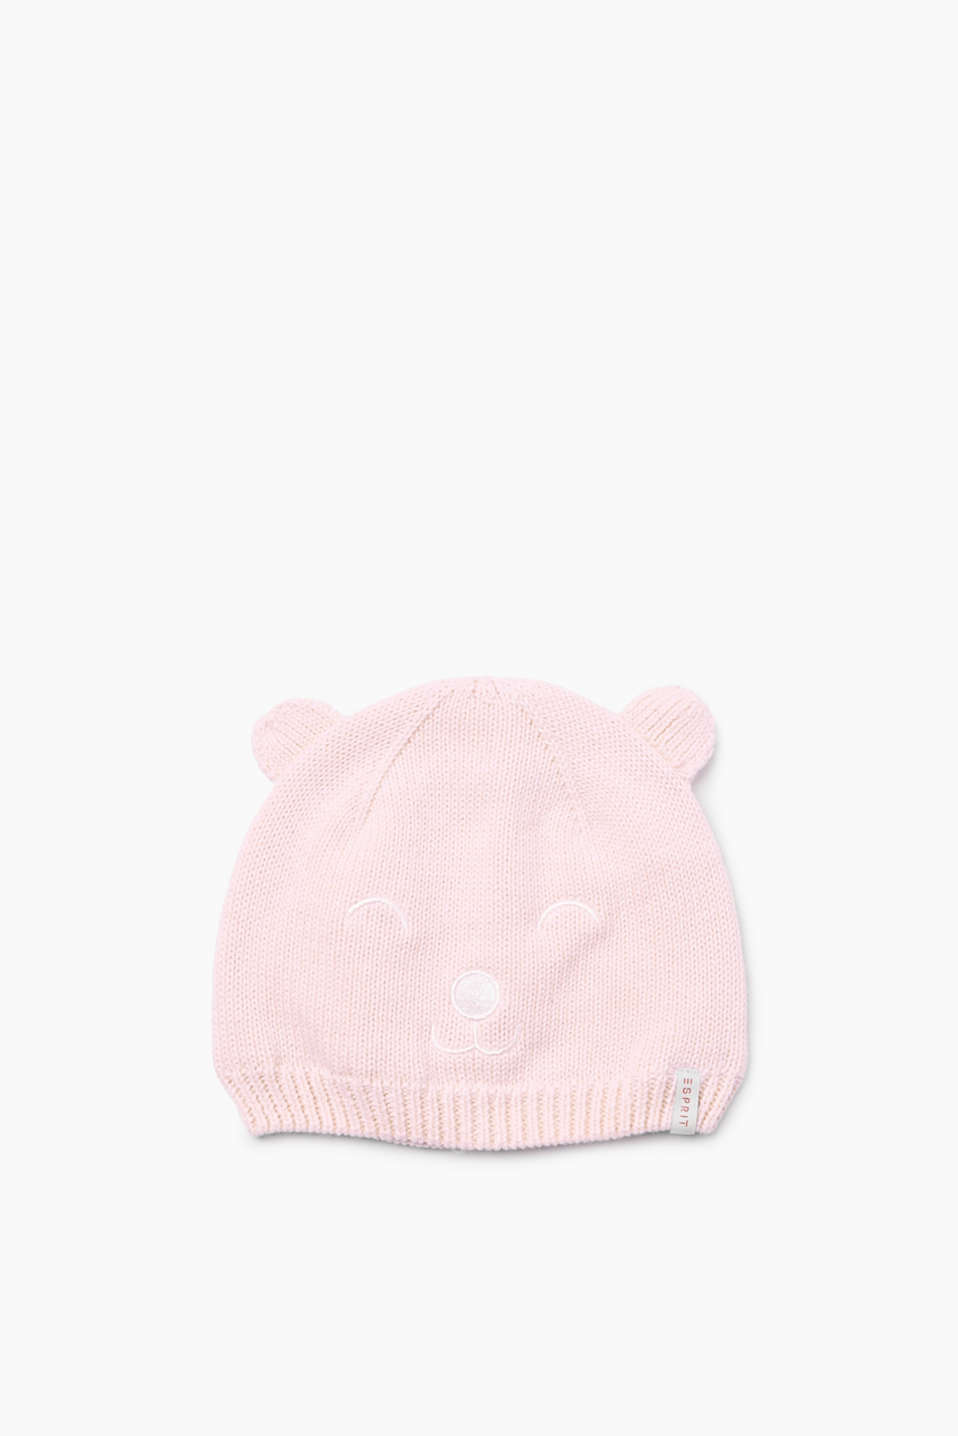 Esprit - Knitted hat with ears, cotton